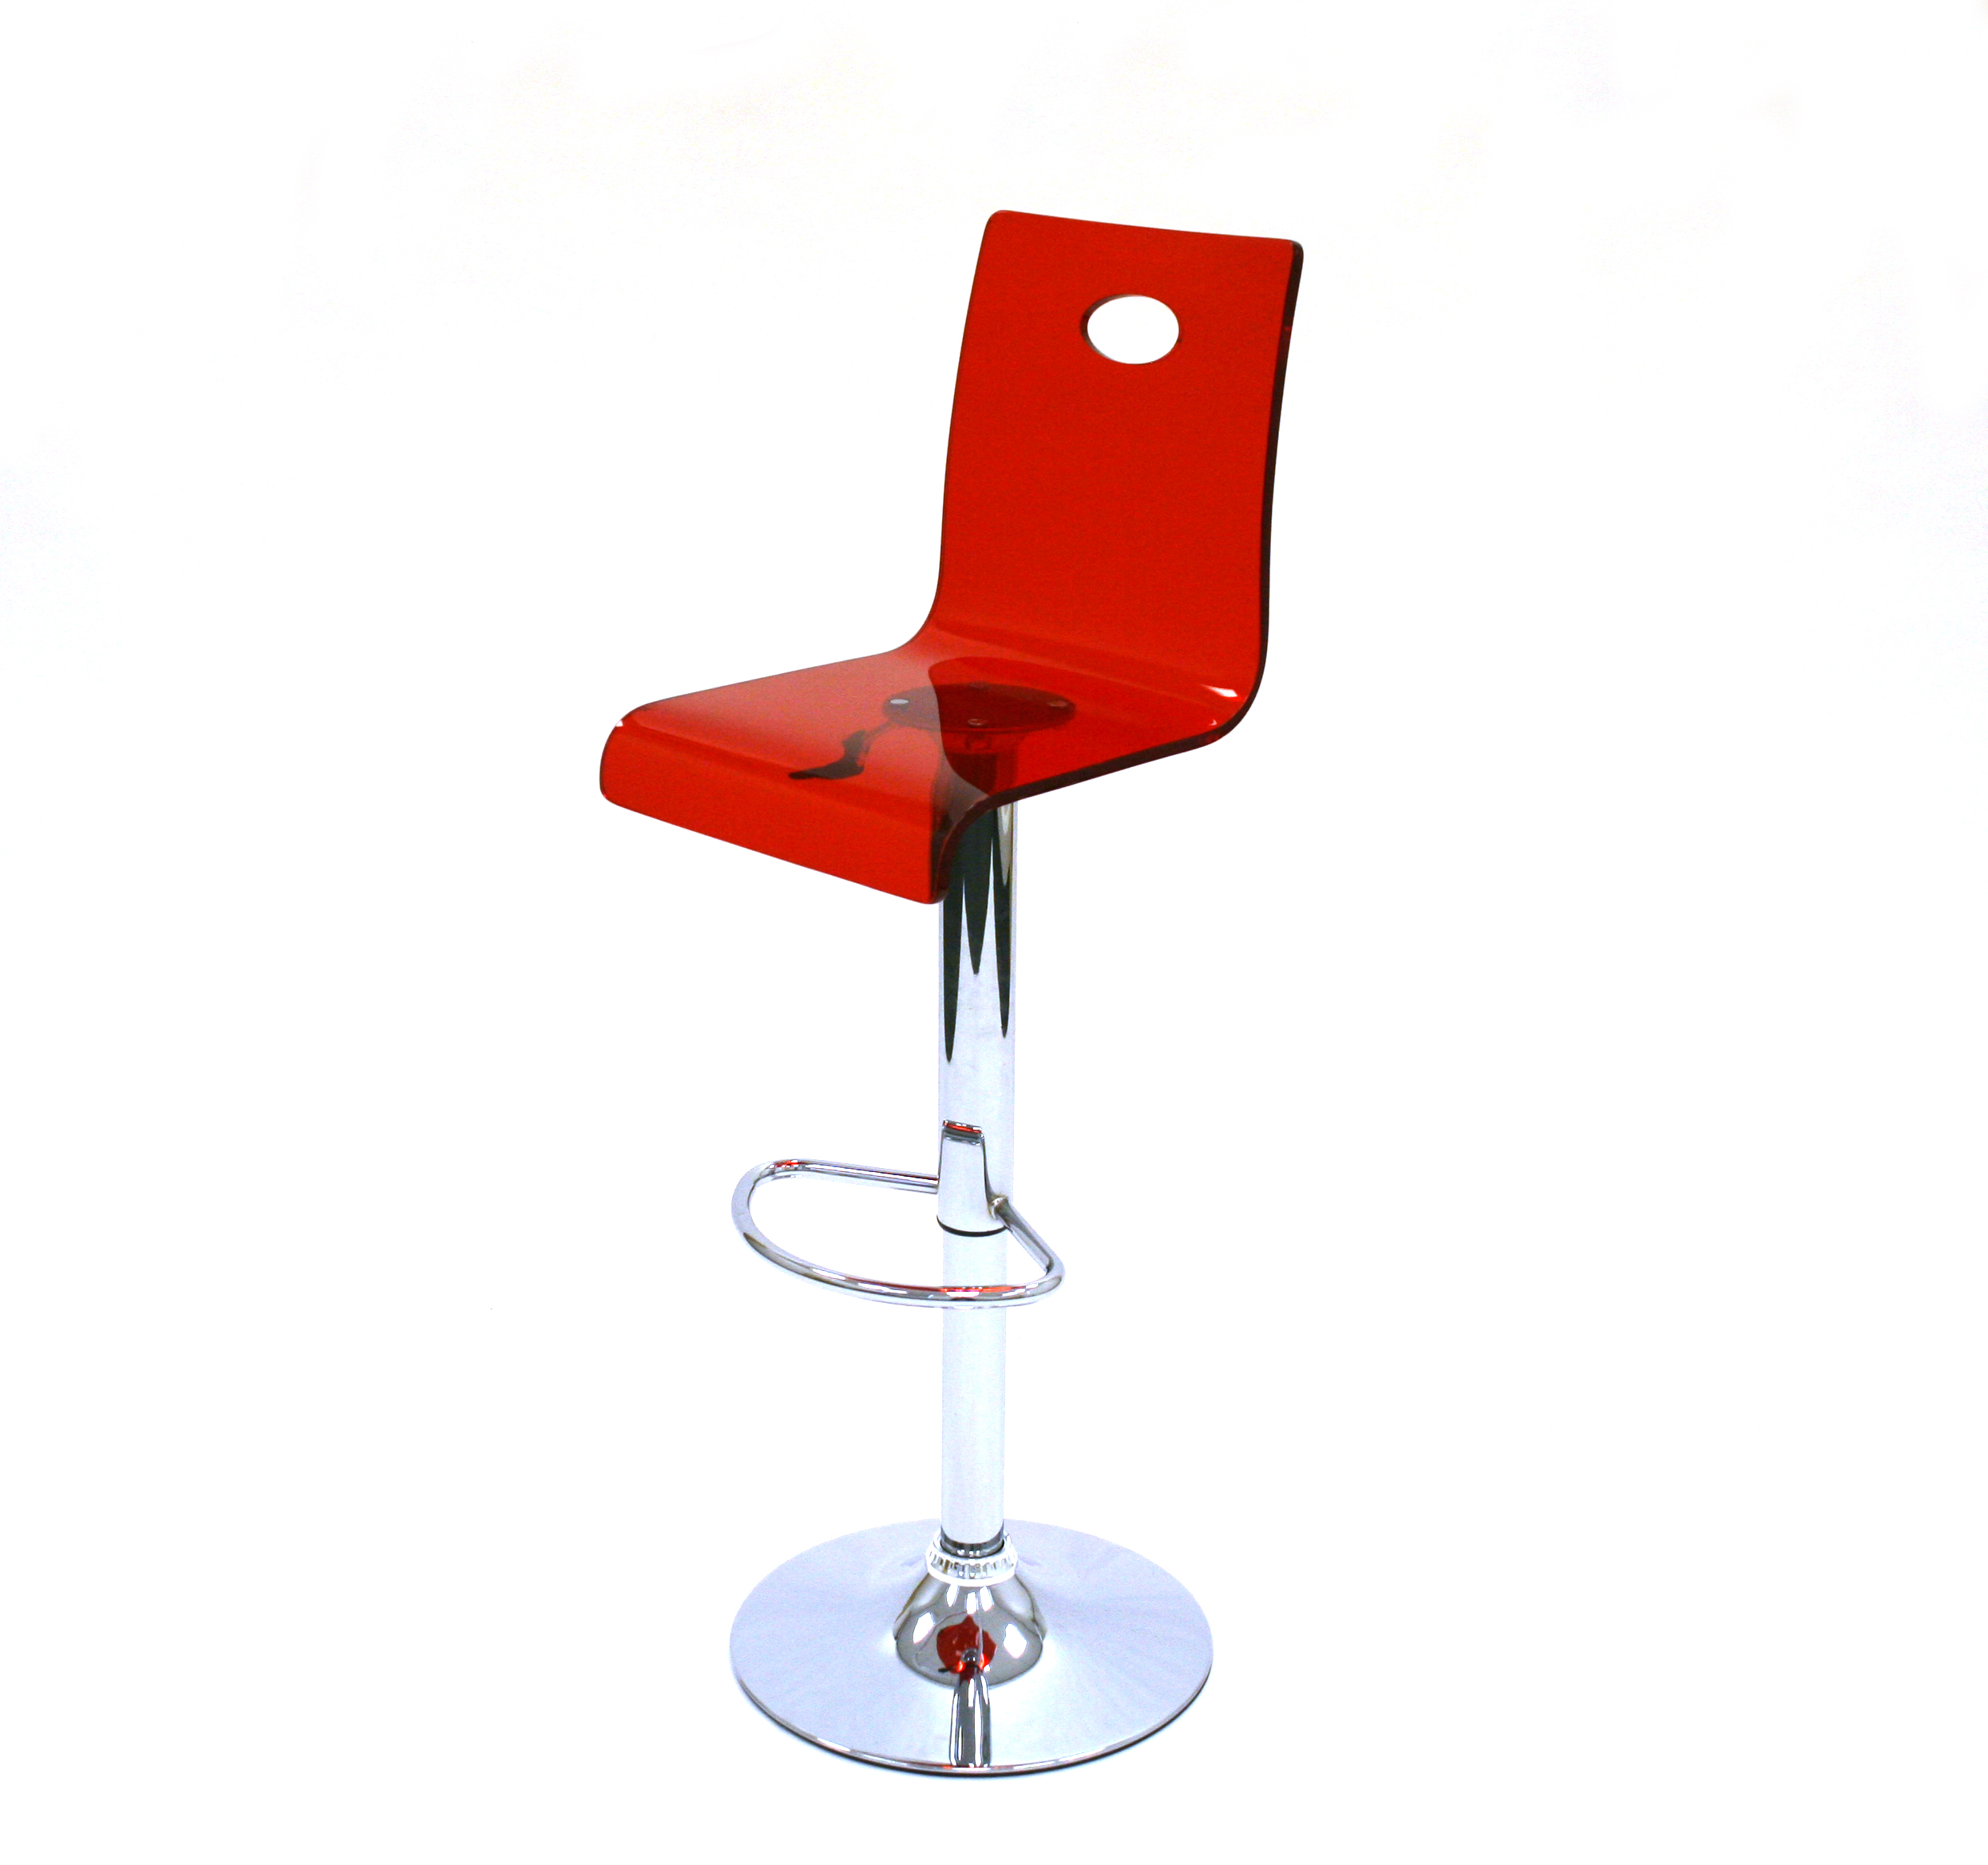 Red Acrylic Bar Stool Hire - Events, Cafes, Exhibition - BE Event Hire